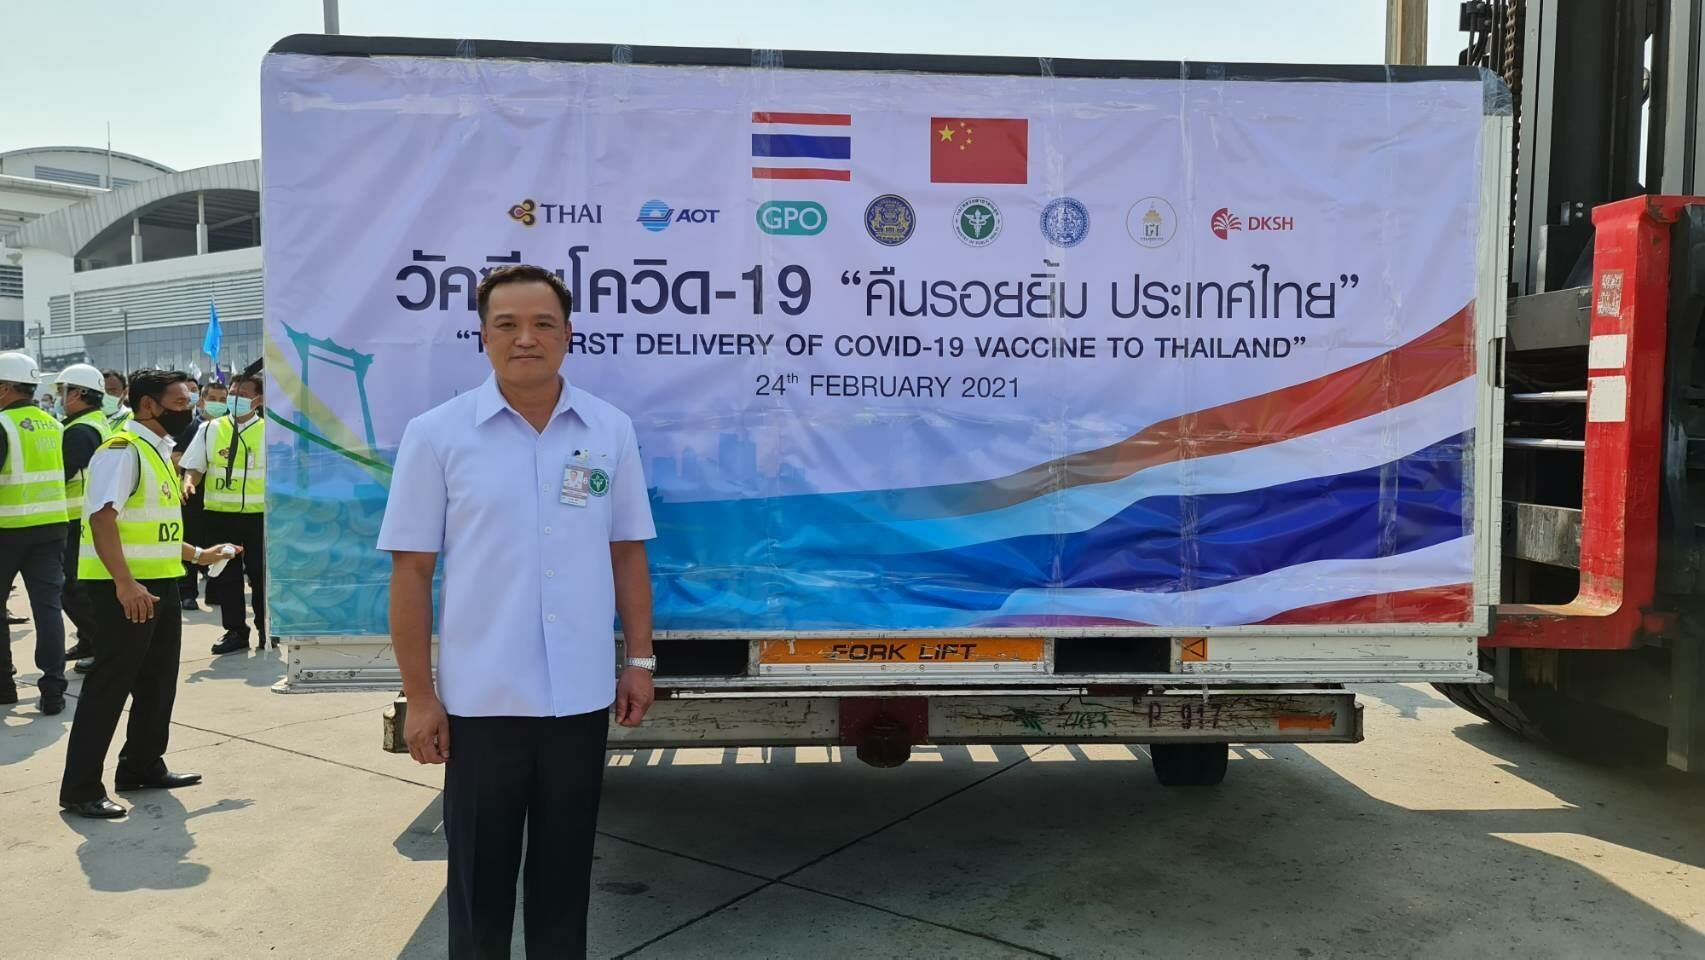 AstraZeneca Covid-19 vaccine is also set to arrive in Thailand today | Thaiger